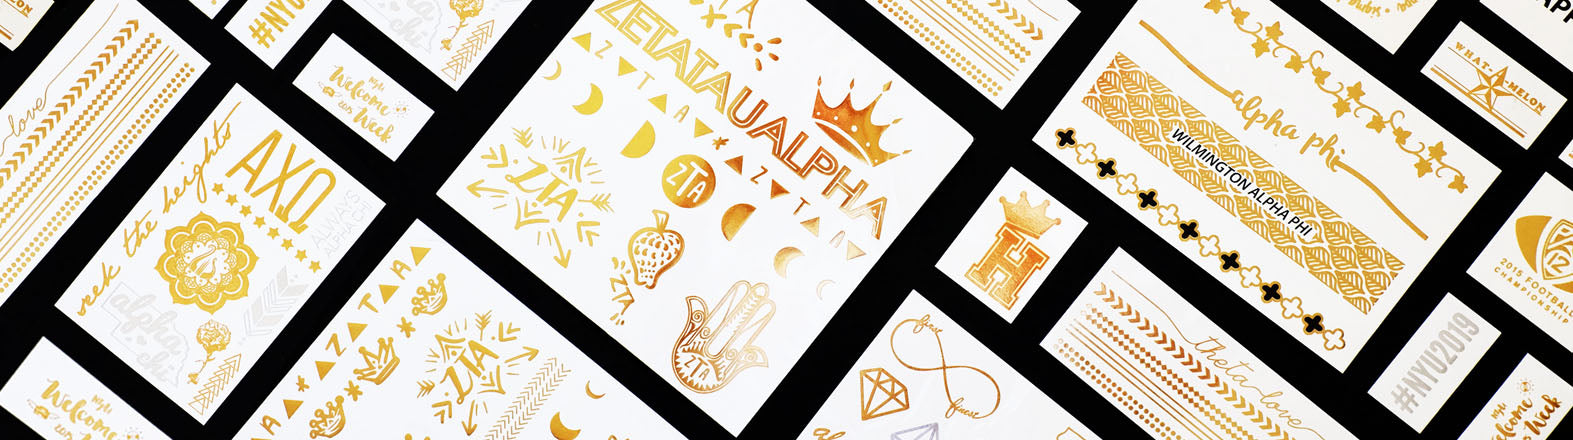 example of custom flash tattoos for sorority events